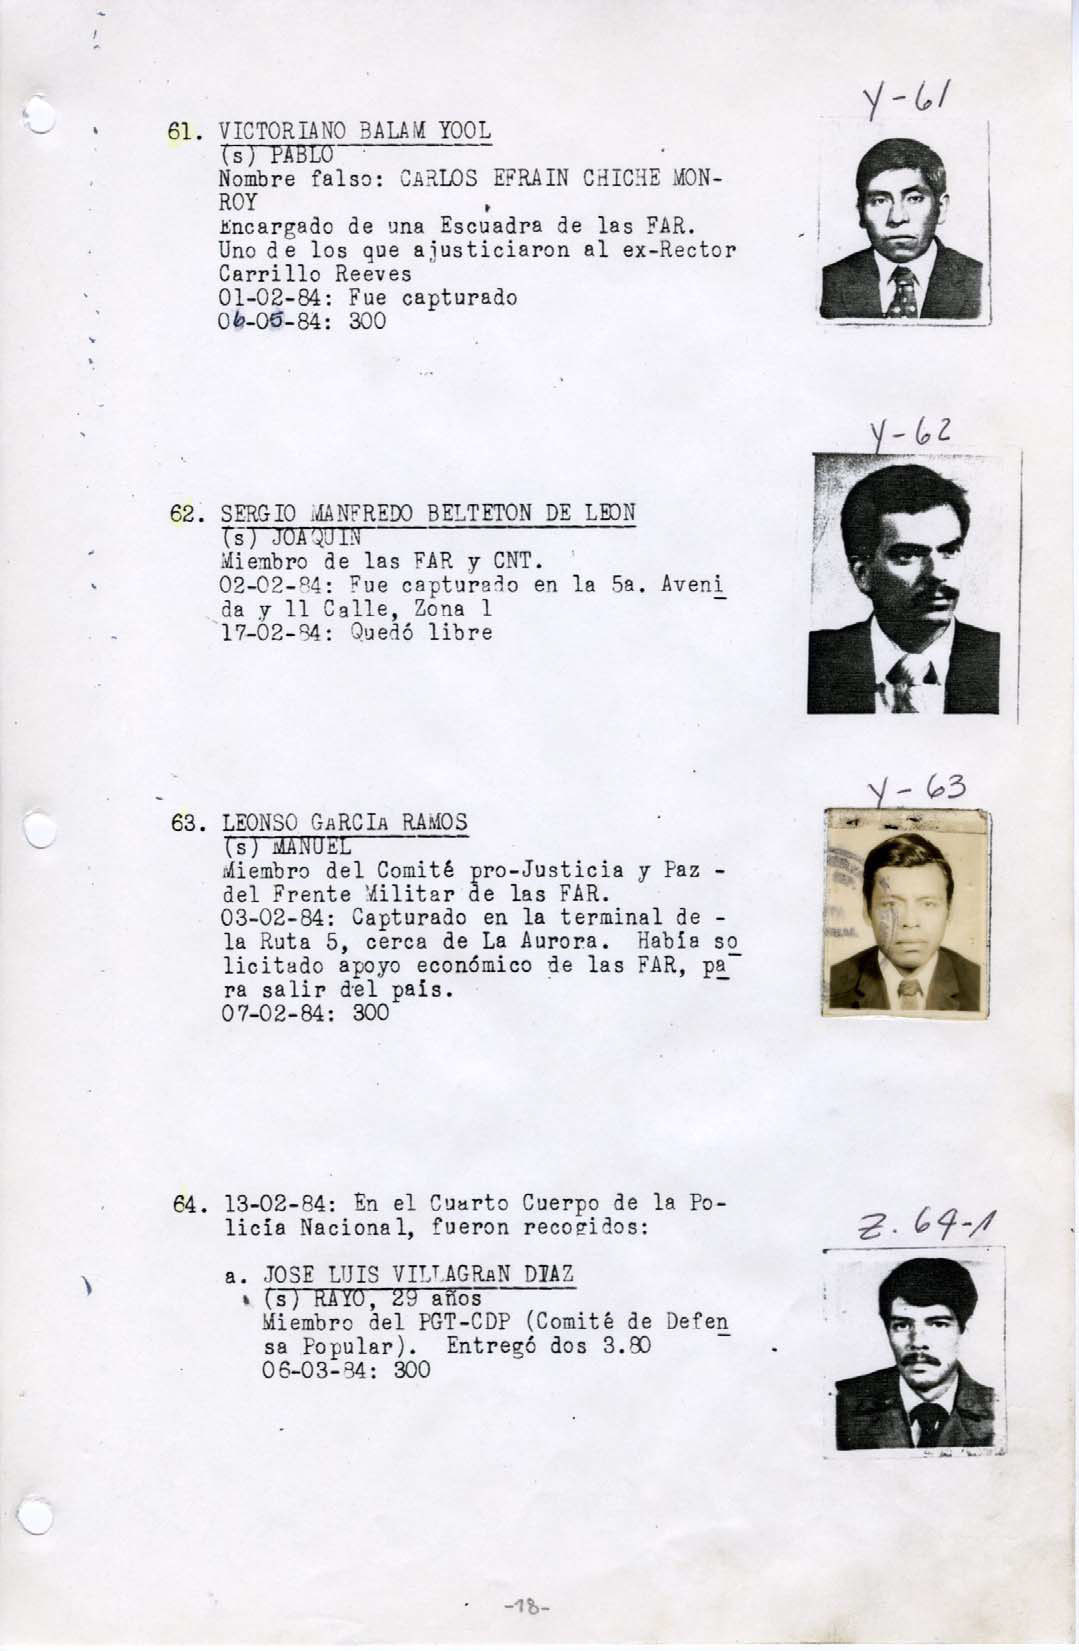 A sample page of the Military Diary obtained by human rights groups and the Washington, D.C.-based National Security Archive in 1999. The logbook details the activity of Guatemalan government death squads during an 18-month period from August 1983 to March 1985. (National Security Archive)